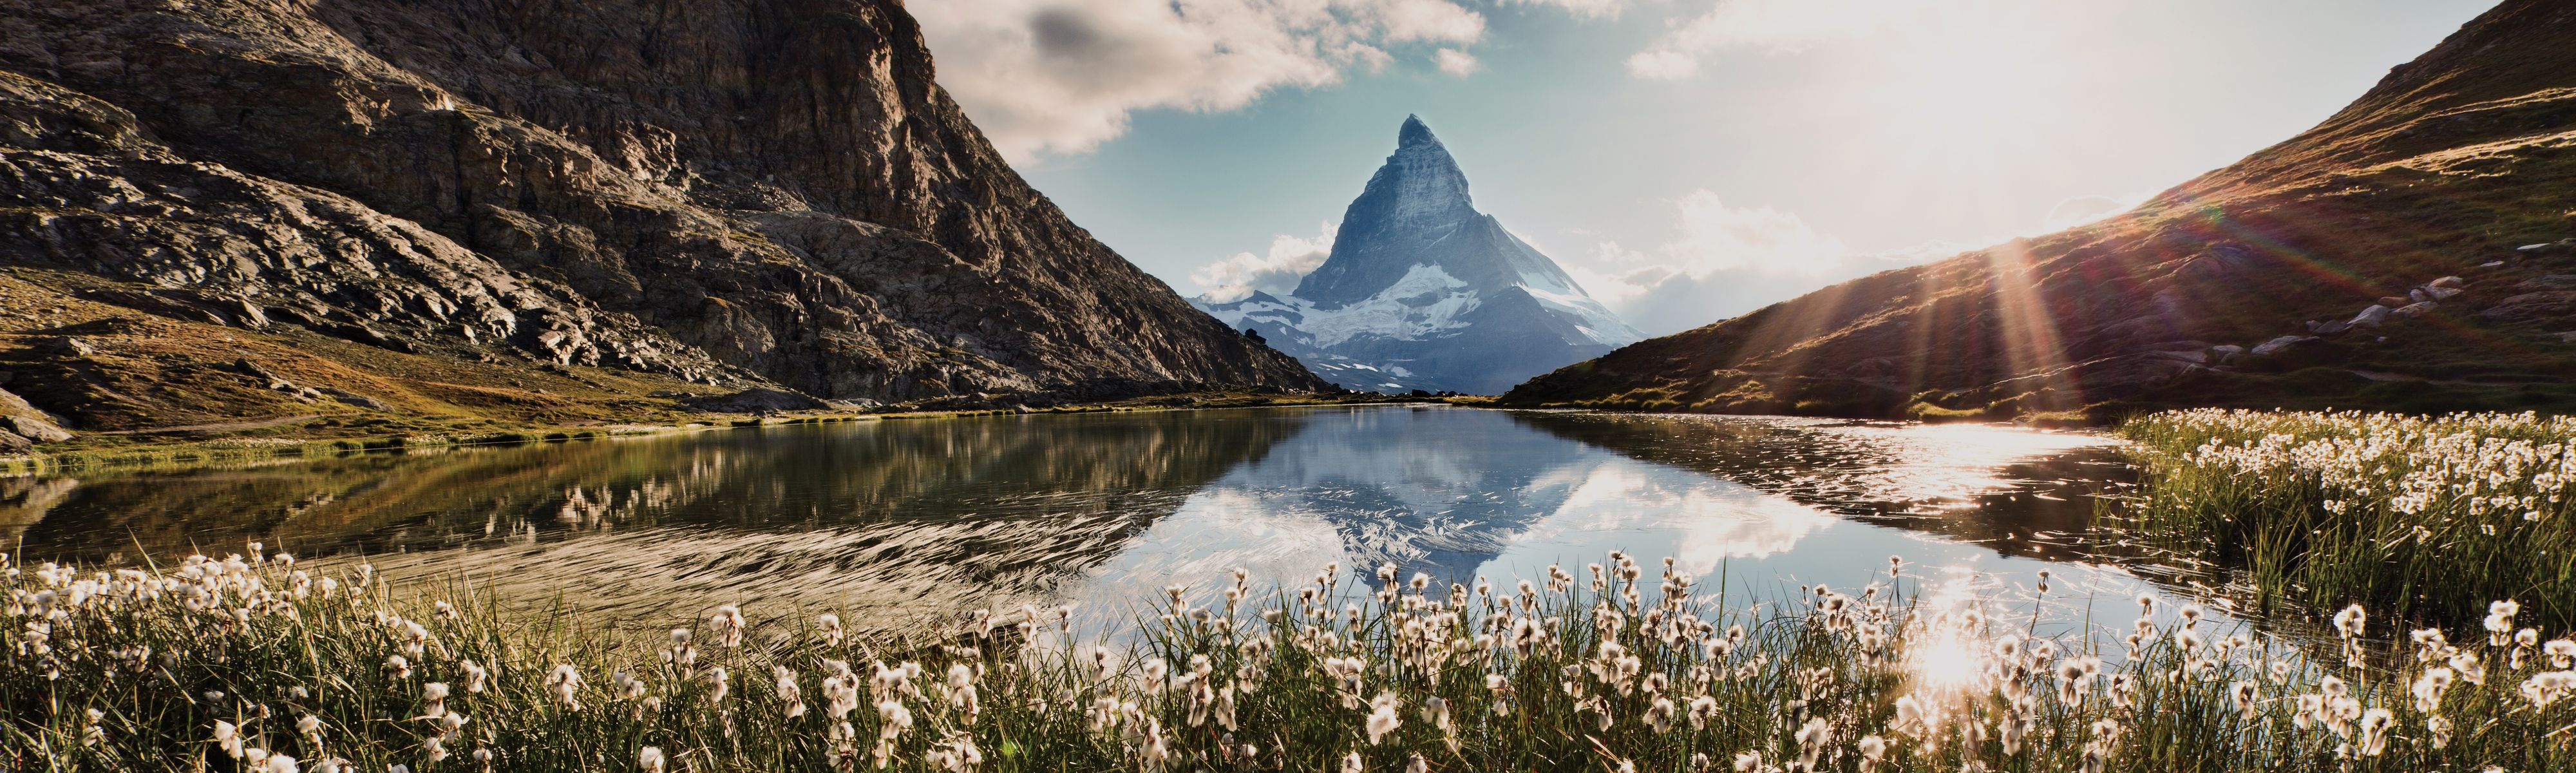 white flowers surrounding a lake by Matterhorn mountain in Switzerland